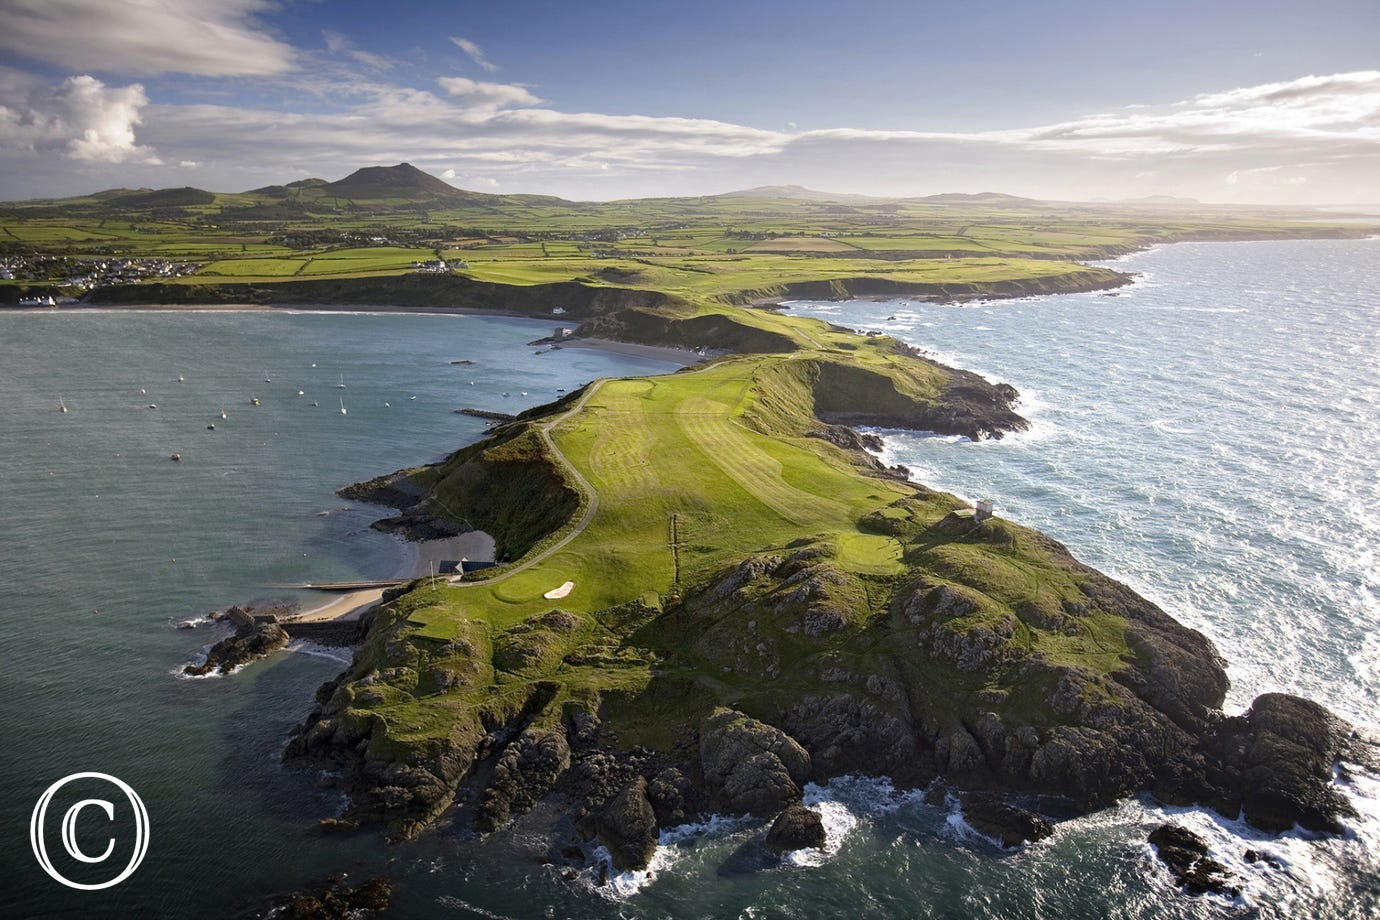 Morfa Nefyn Golf Course - they don't come much more scenic than this